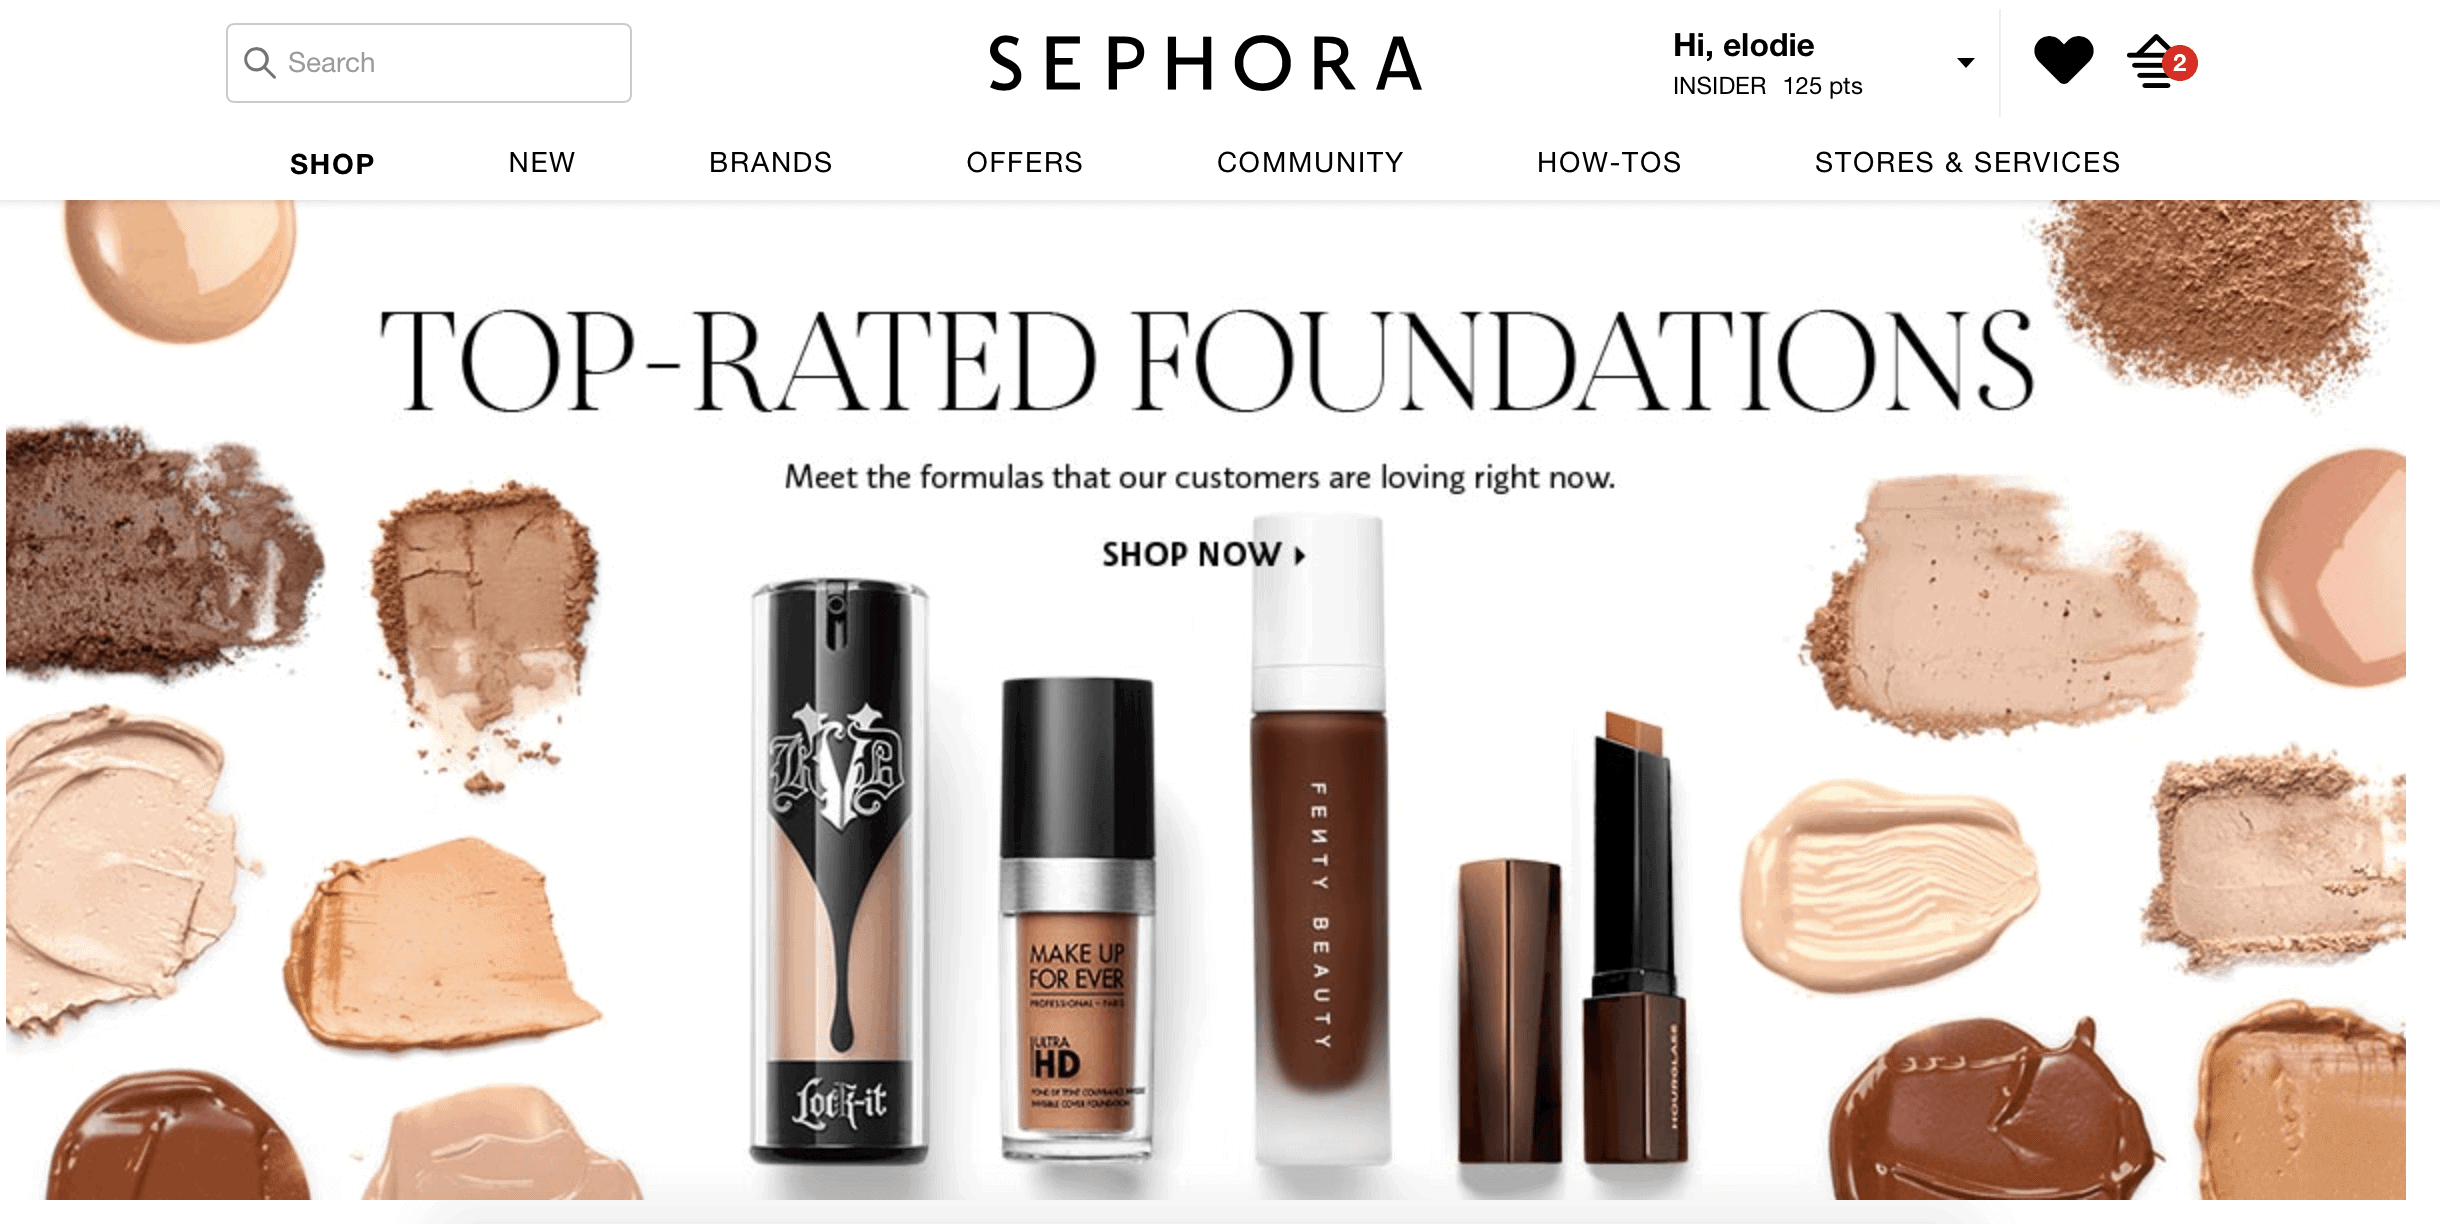 m Followers, Following, 2, Posts - See Instagram photos and videos from Sephora France (@sephorafrance).